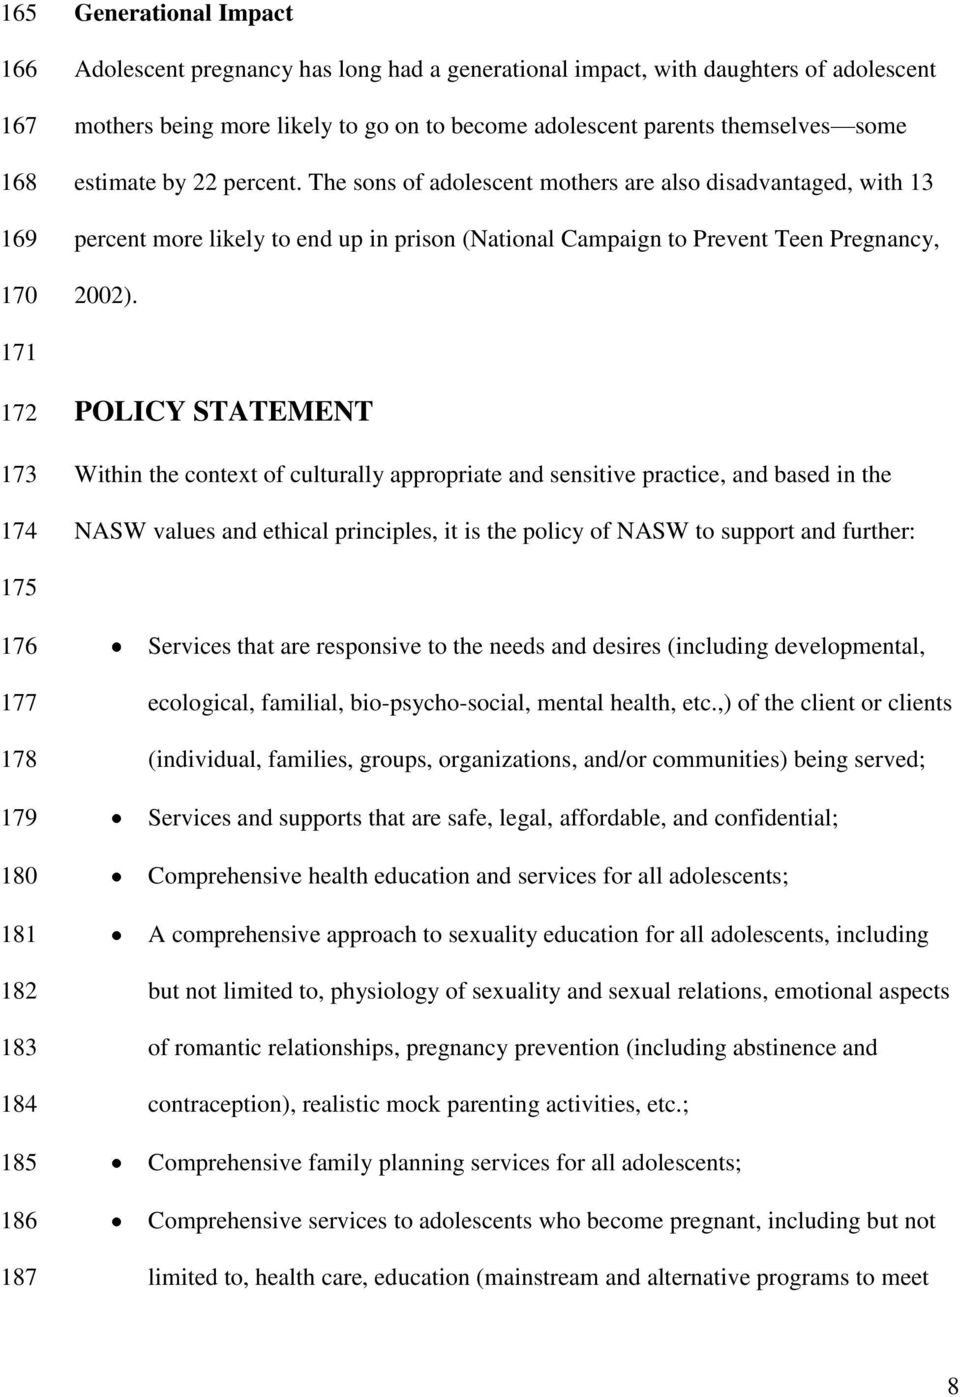 171 172 173 174 POLICY STATEMENT Within the context of culturally appropriate and sensitive practice, and based in the NASW values and ethical principles, it is the policy of NASW to support and